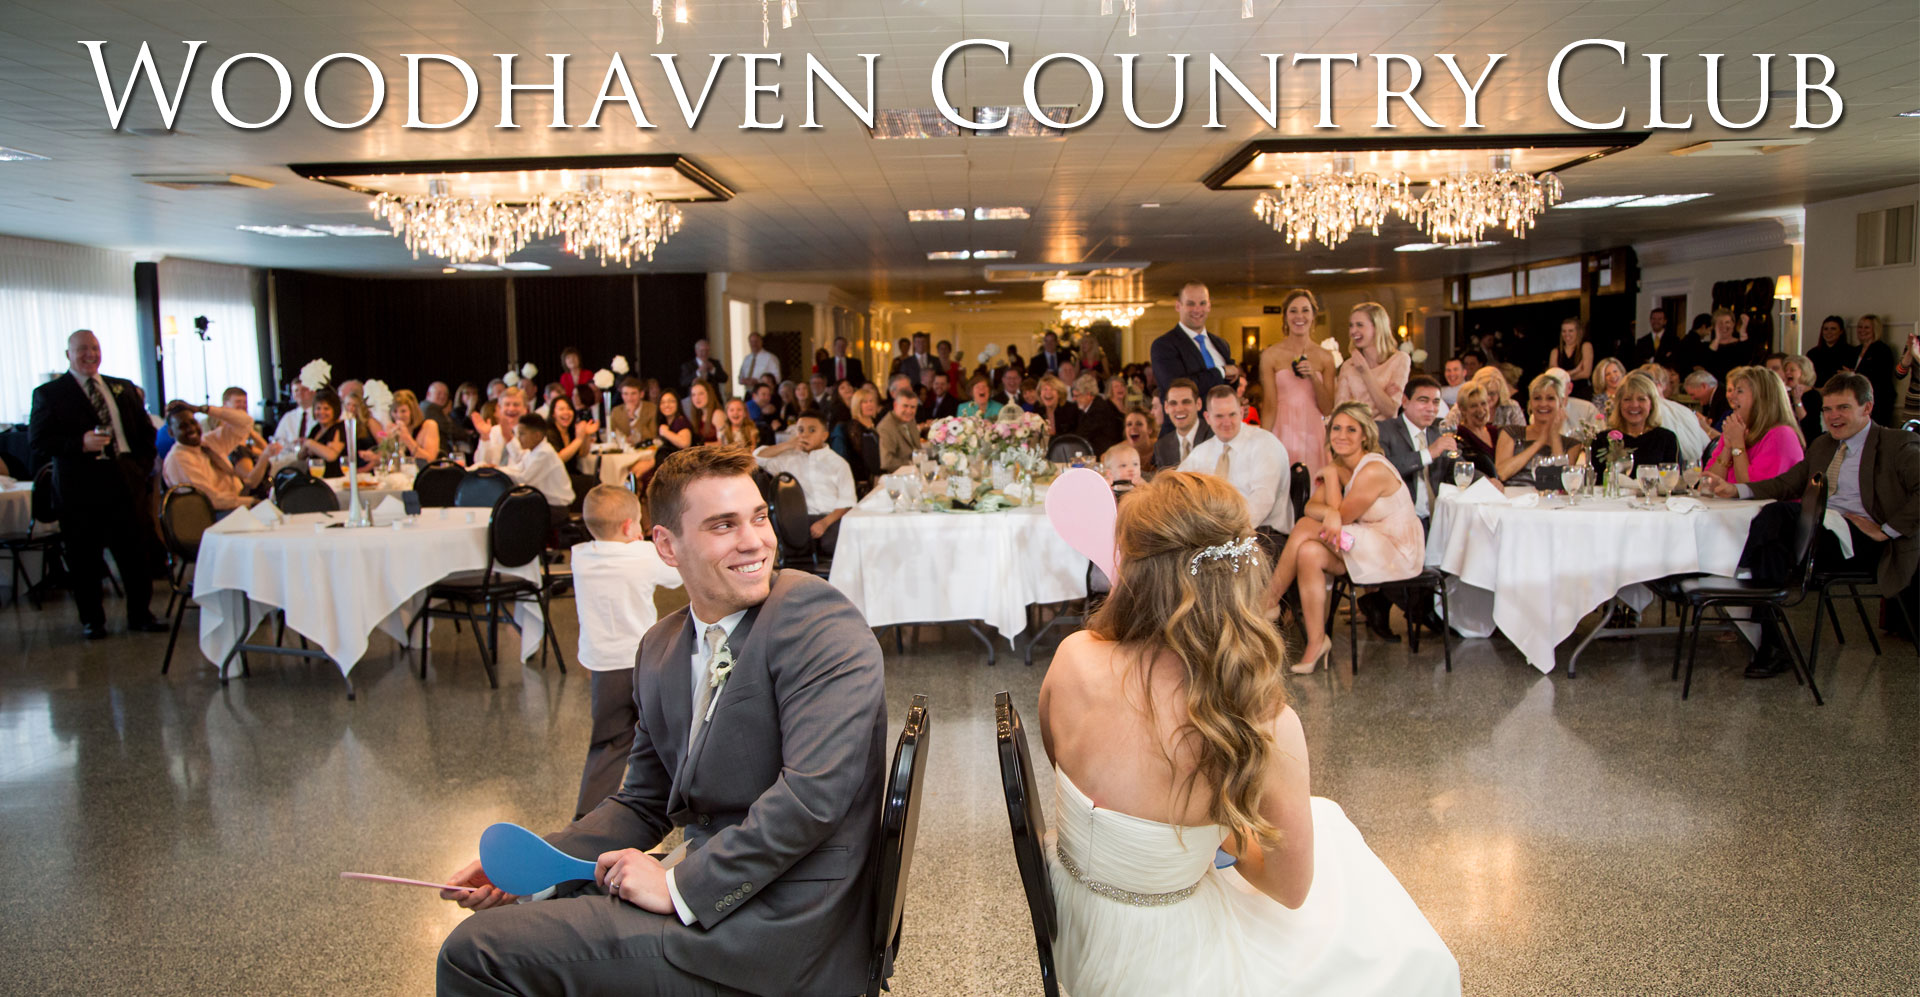 Woodhaven Country Club Wedding